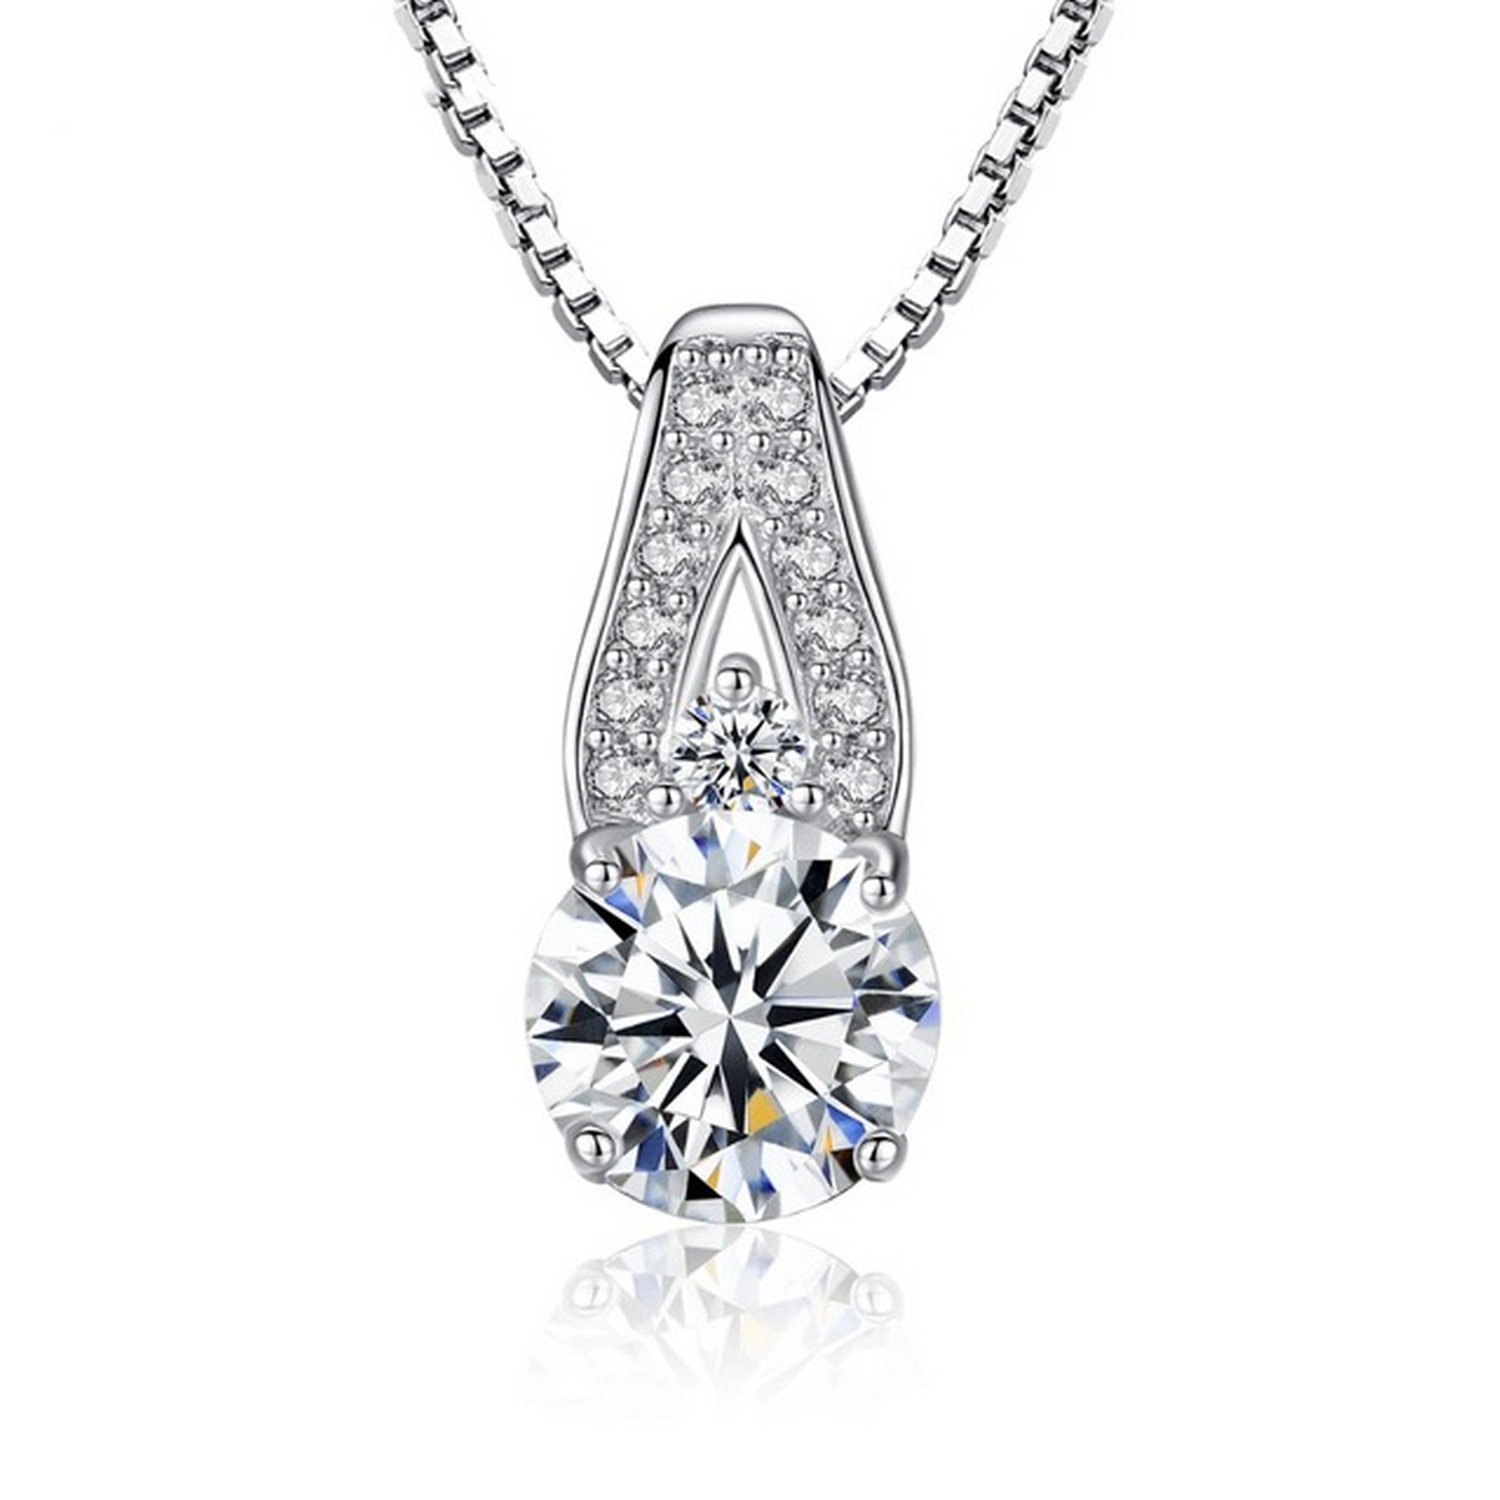 MMC Womens Necklaces Pendants Wedding Gift Engagement Silver Jewelry